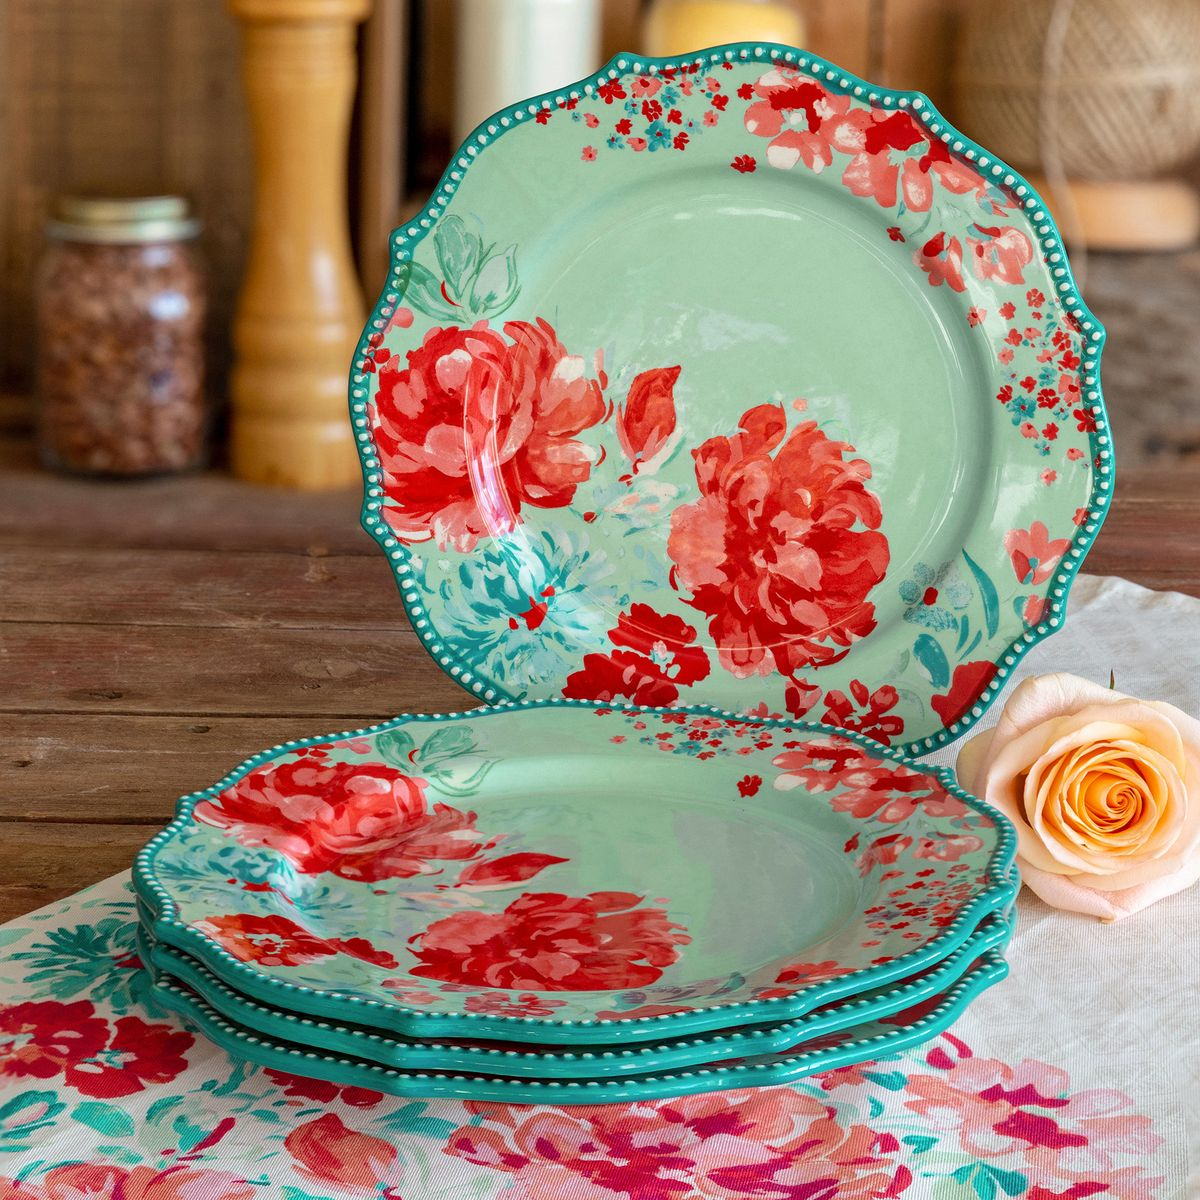 Free 2-day shipping on qualified orders over $35. Buy The Pioneer Woman Gorgeous Garden Dinner Plates, Set of 4 at Walmart.com